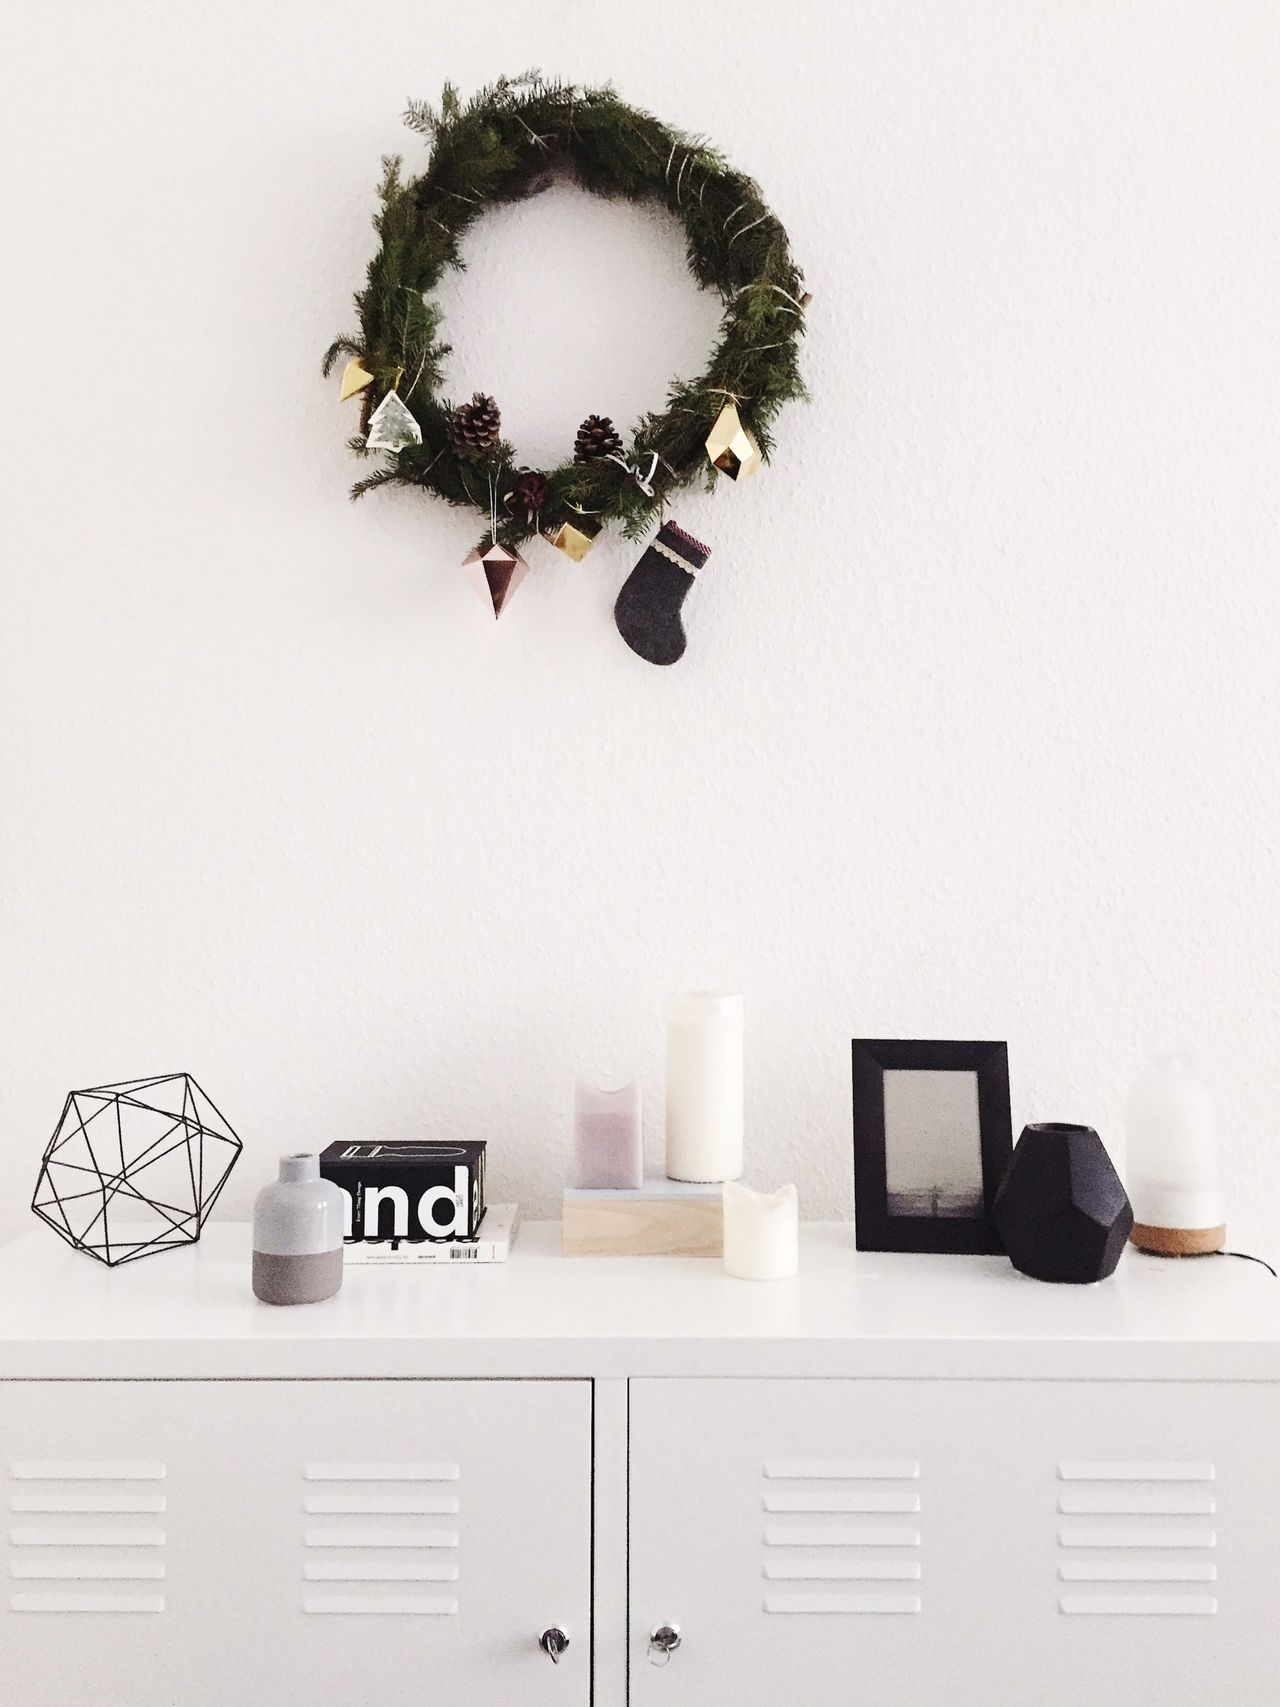 selfmade Christmas wreath at home 🏡🎄🌠 Handmade For You Christmastime Selfmade Apartment Interior Design Interior Home Wreath White White Color White Background Home Interior No People Design Moments Cozy Sideboard White Interior